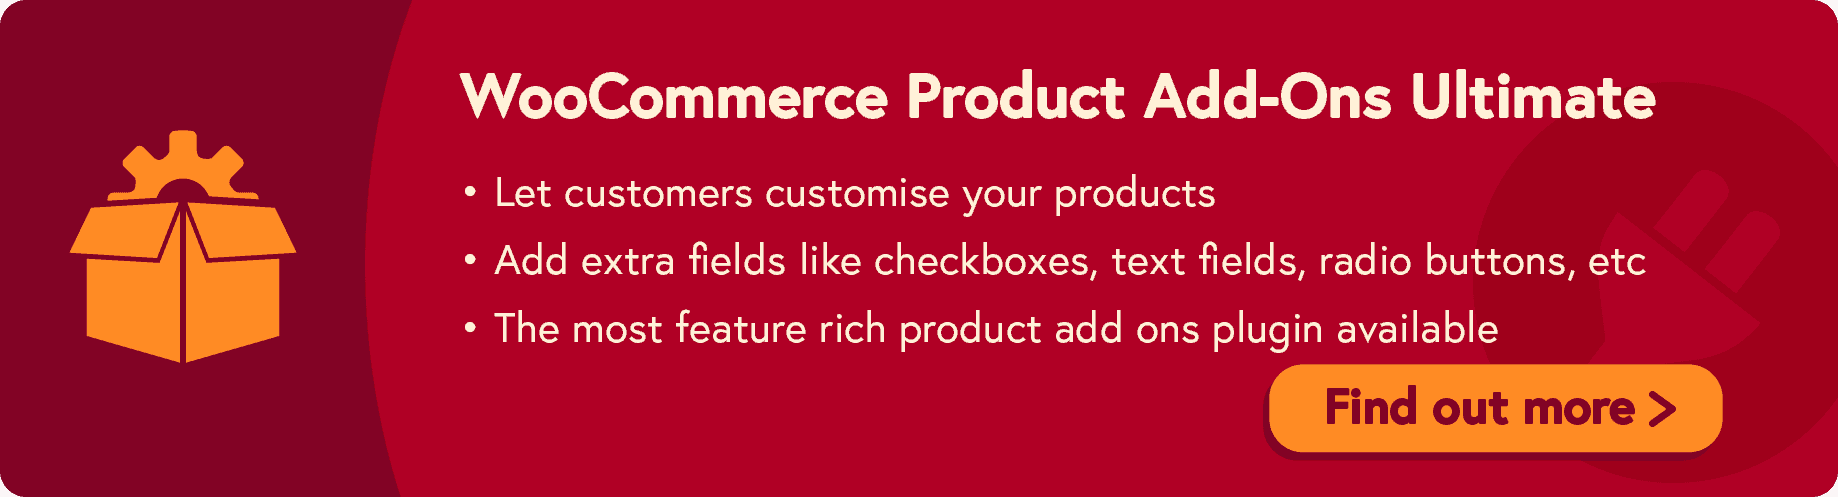 WooCommerce custom product add-ons plugin